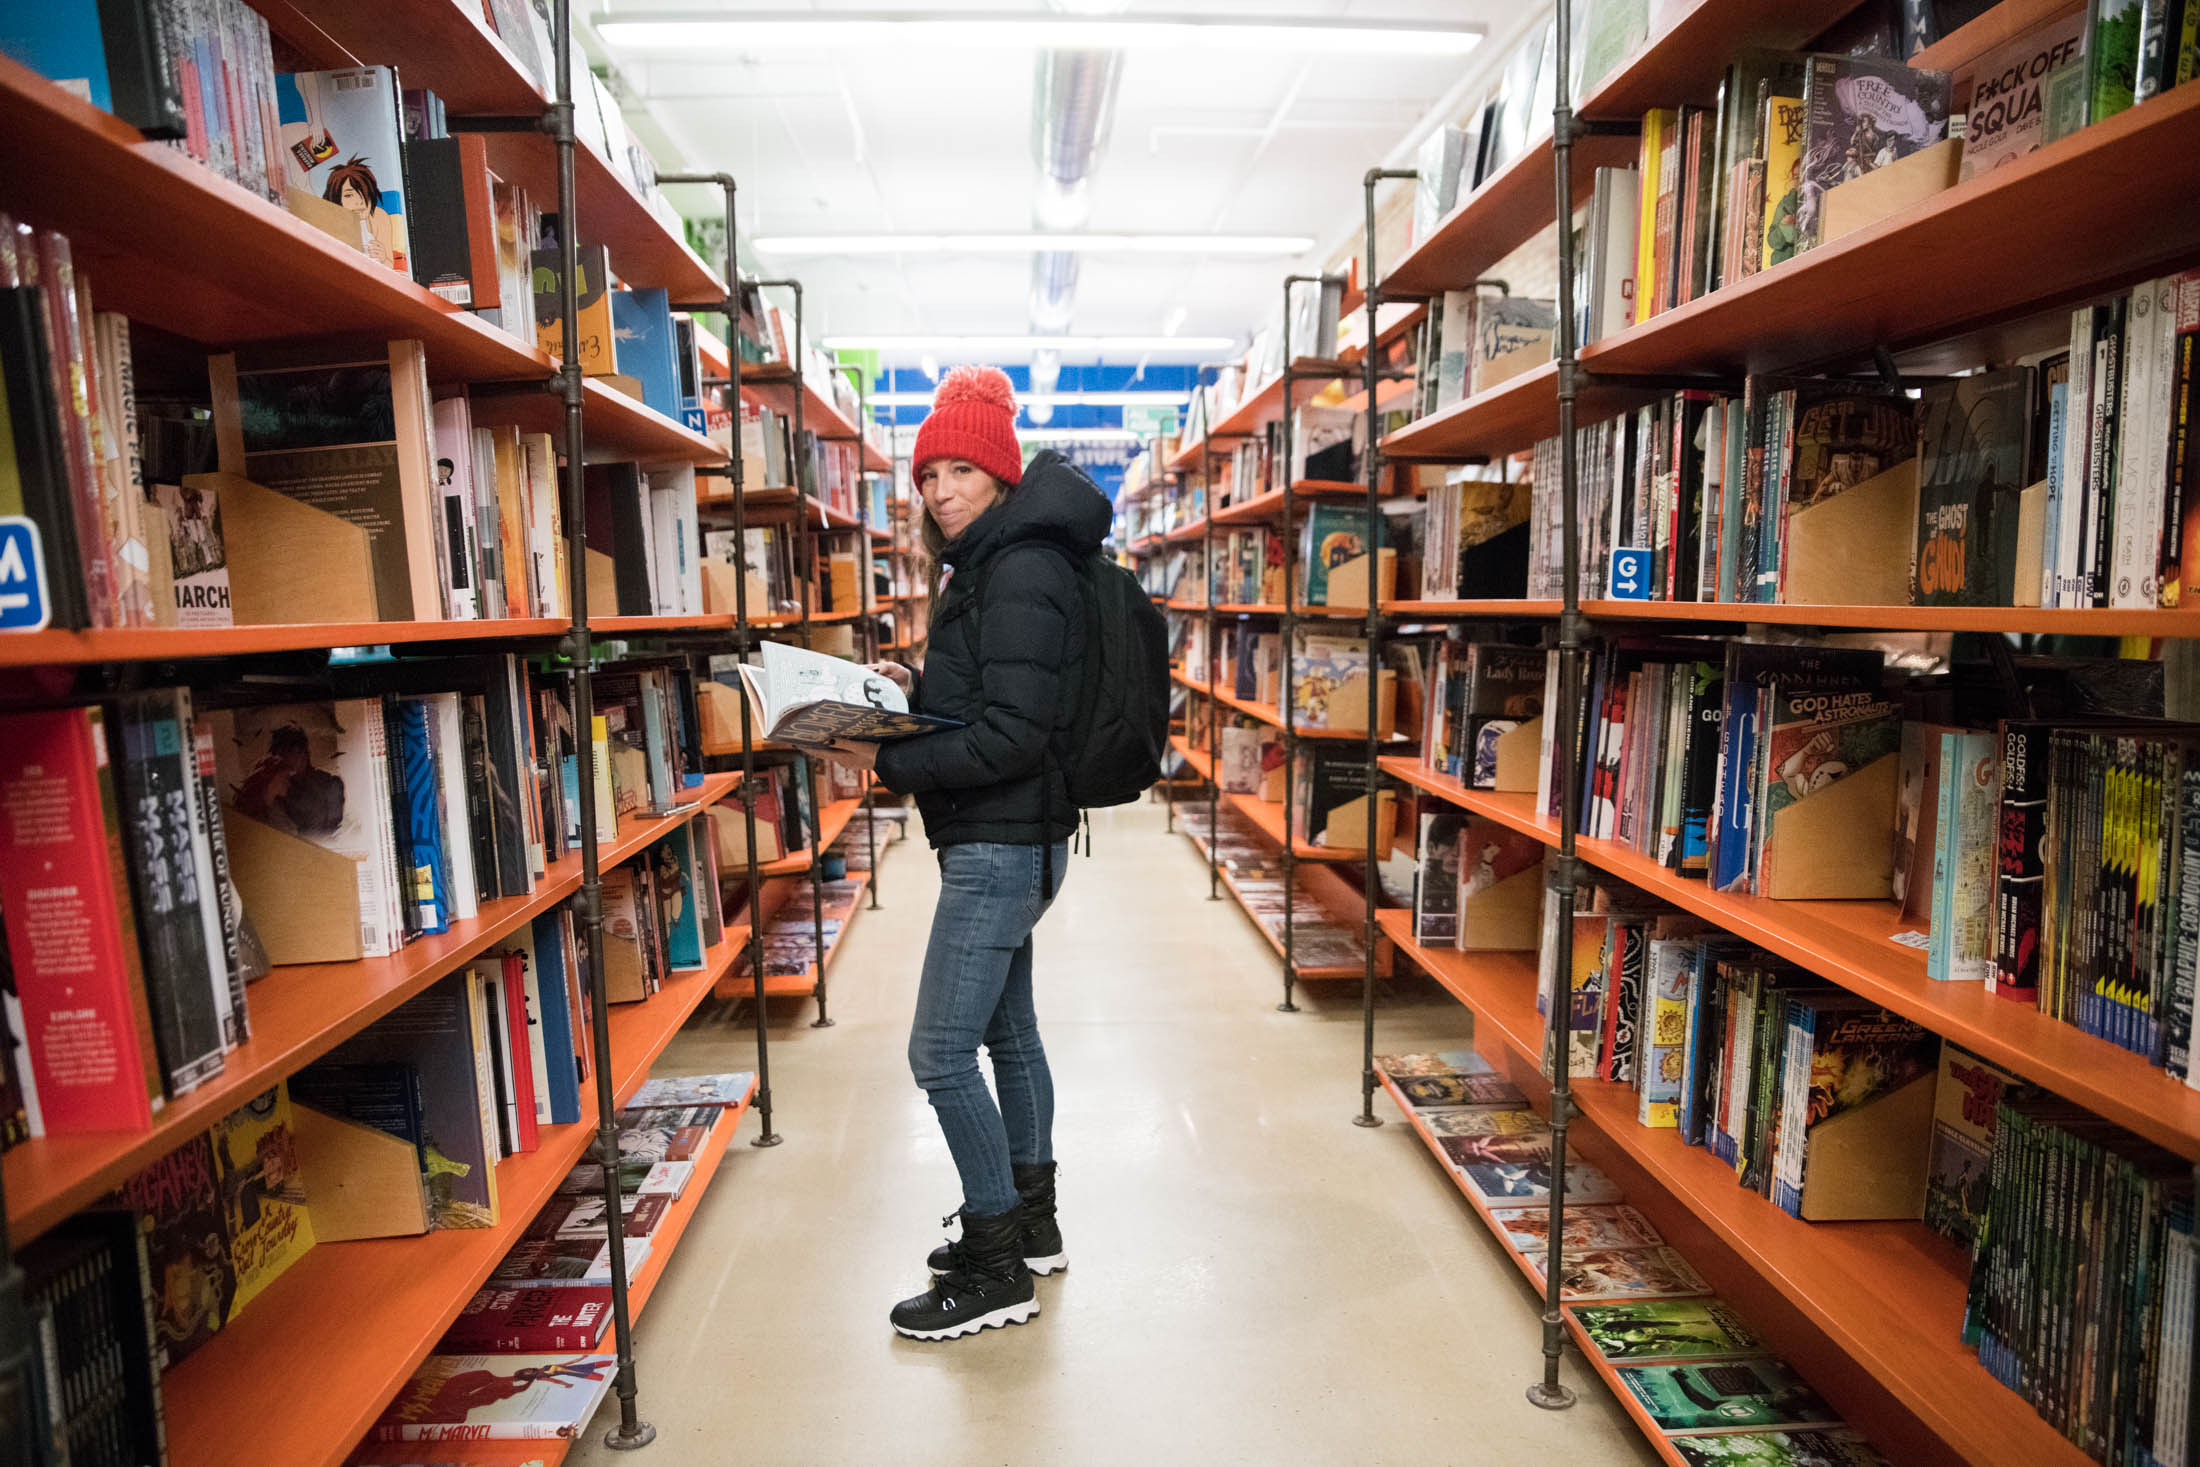 Graphic novels are insanely integral to our kids' love of reading. We got so many v. cool recs from comic book store Vault of Midnight, we had to share.